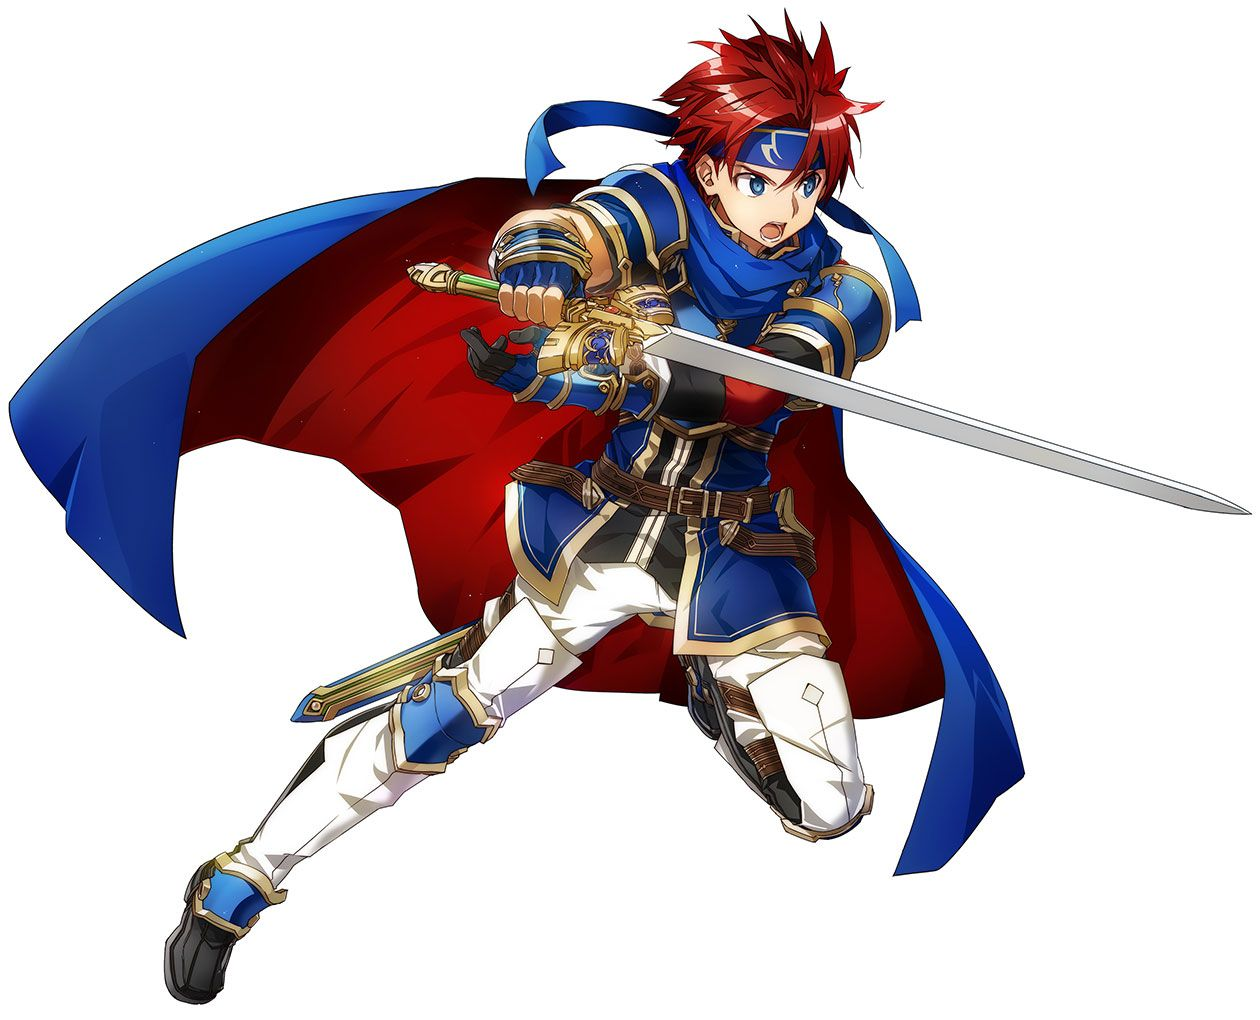 Roy Battle Pose from Fire Emblem: Heroes